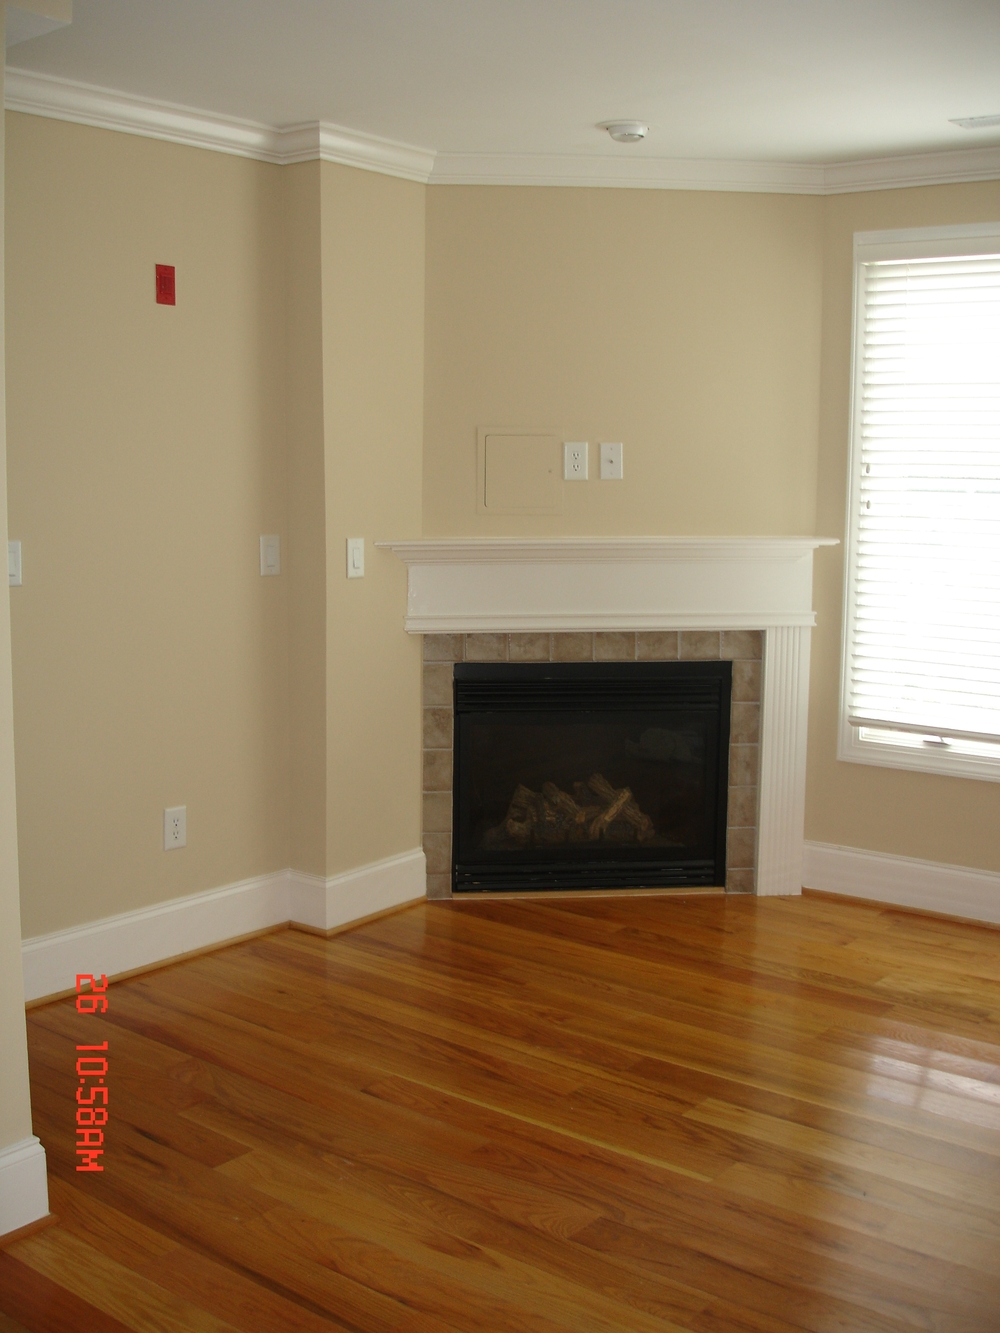 Rosemary Street, 400 W. - #112 - Living Room.JPG